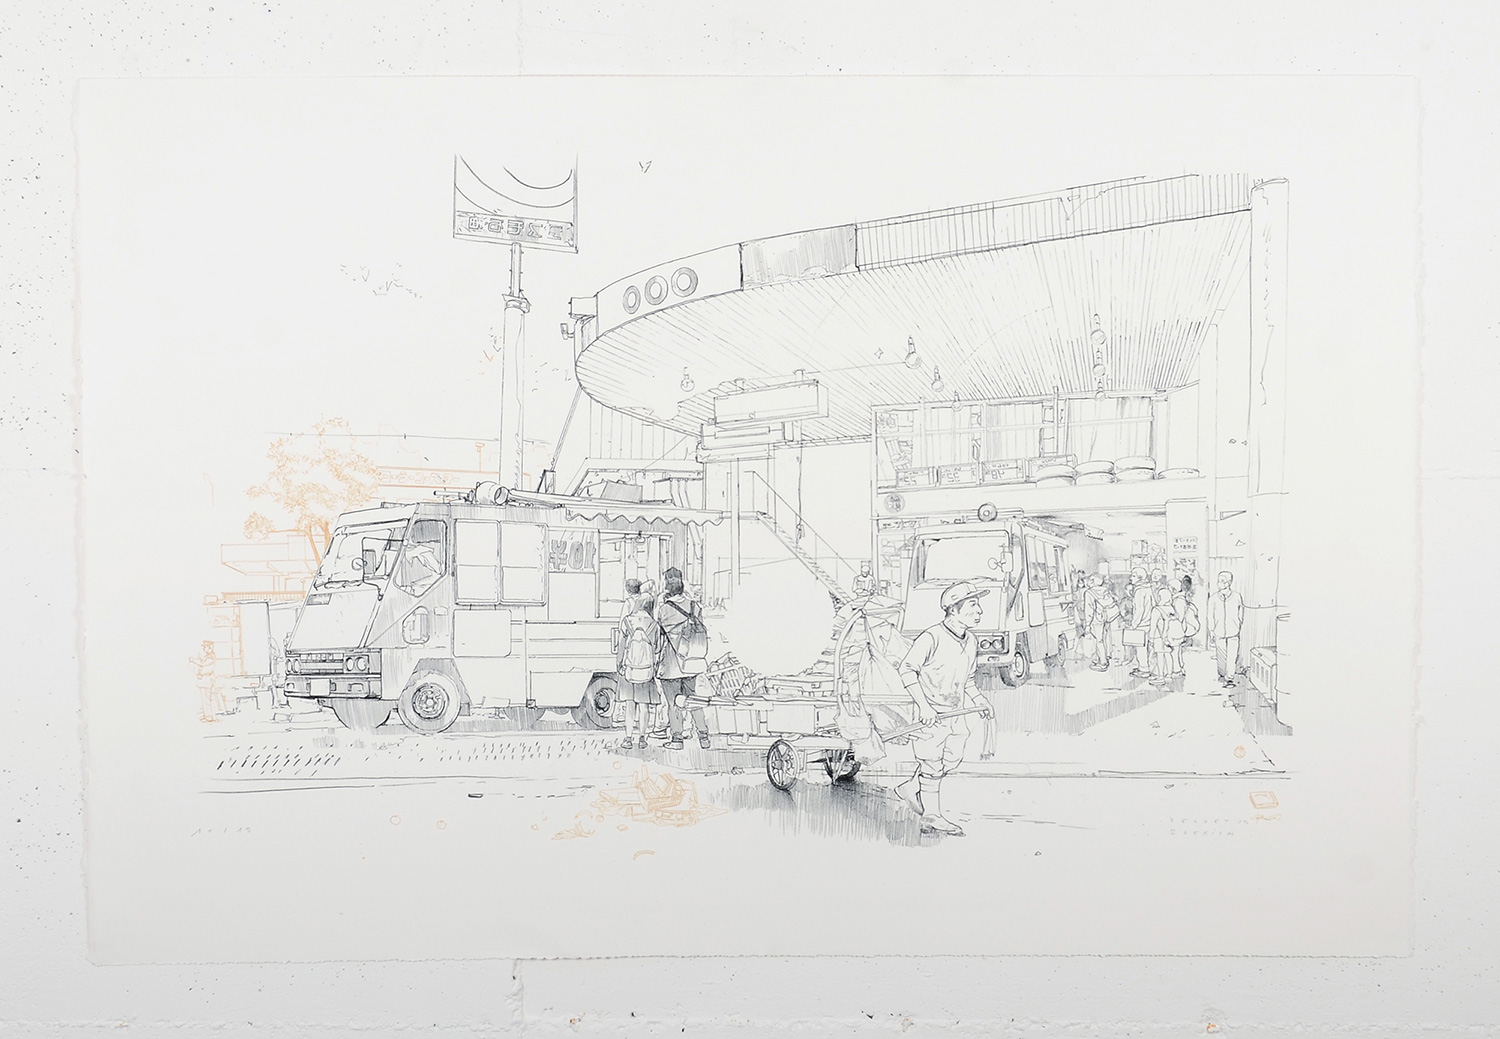 zoer_velvet_street_food_lithographie_CSX_stone_lithograph_urdla_graffiti_process_zoerism_soldart_edition_royx_nicolas_royol_56